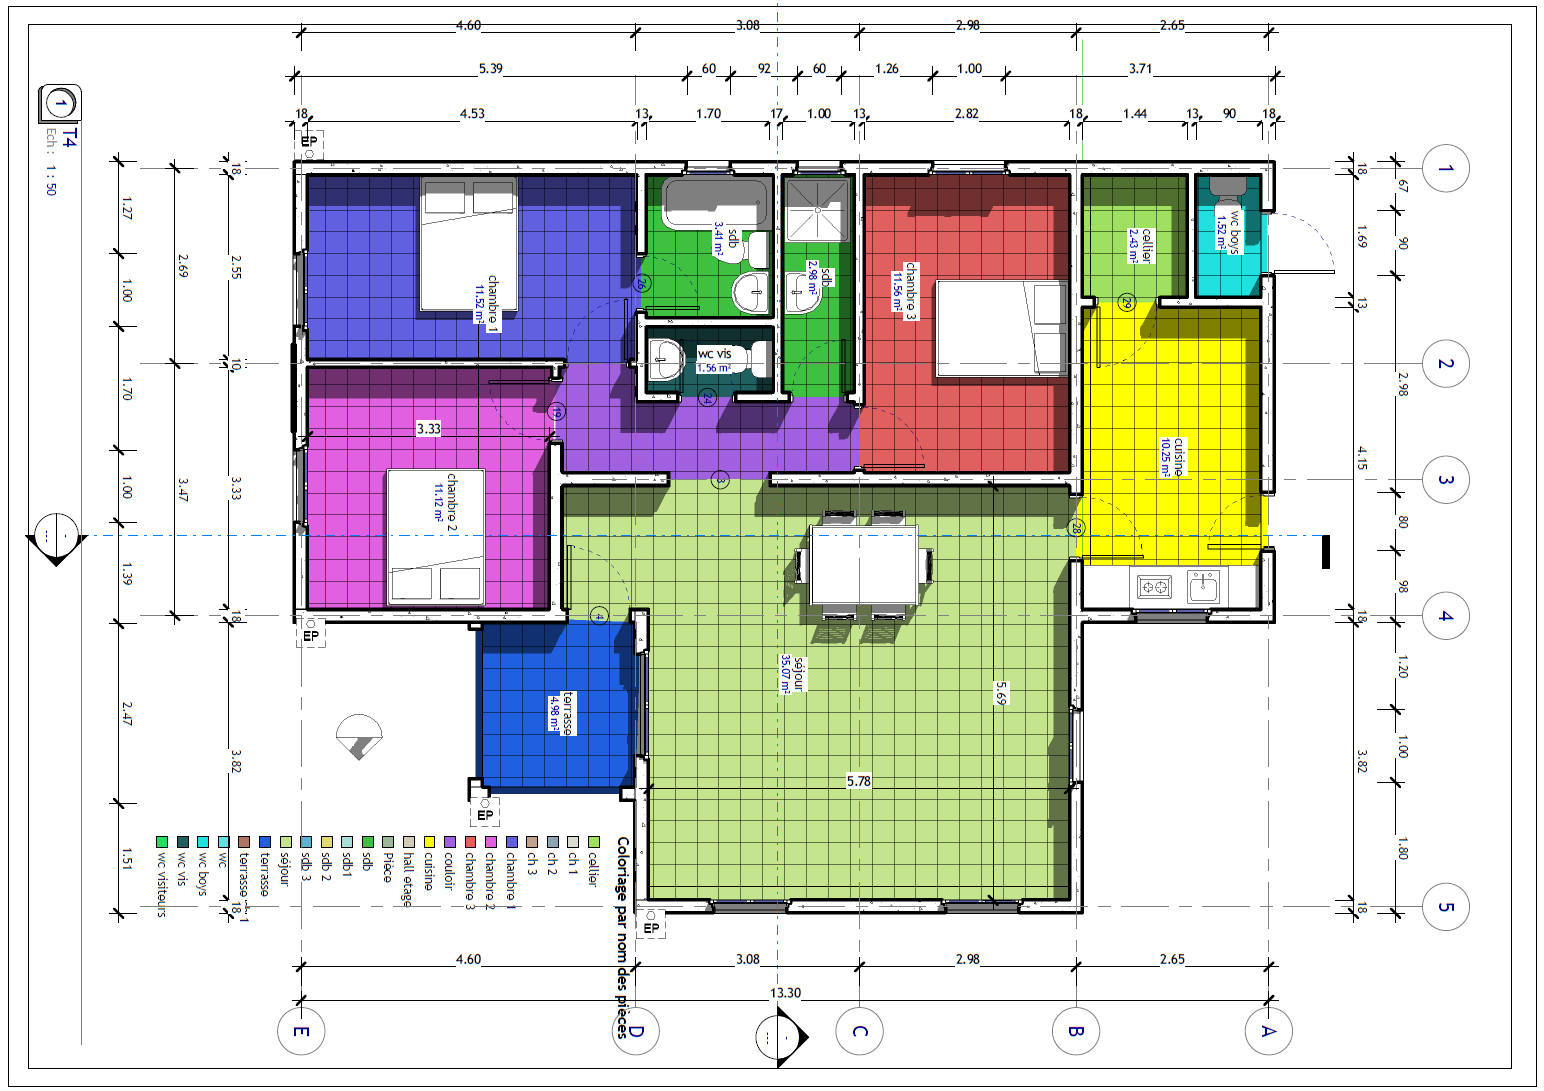 Labyrinth besides About Press In The News Detail in addition Deck Plans additionally Fortune Kasturi Bhopal further 034h 0200. on commercial floor plans